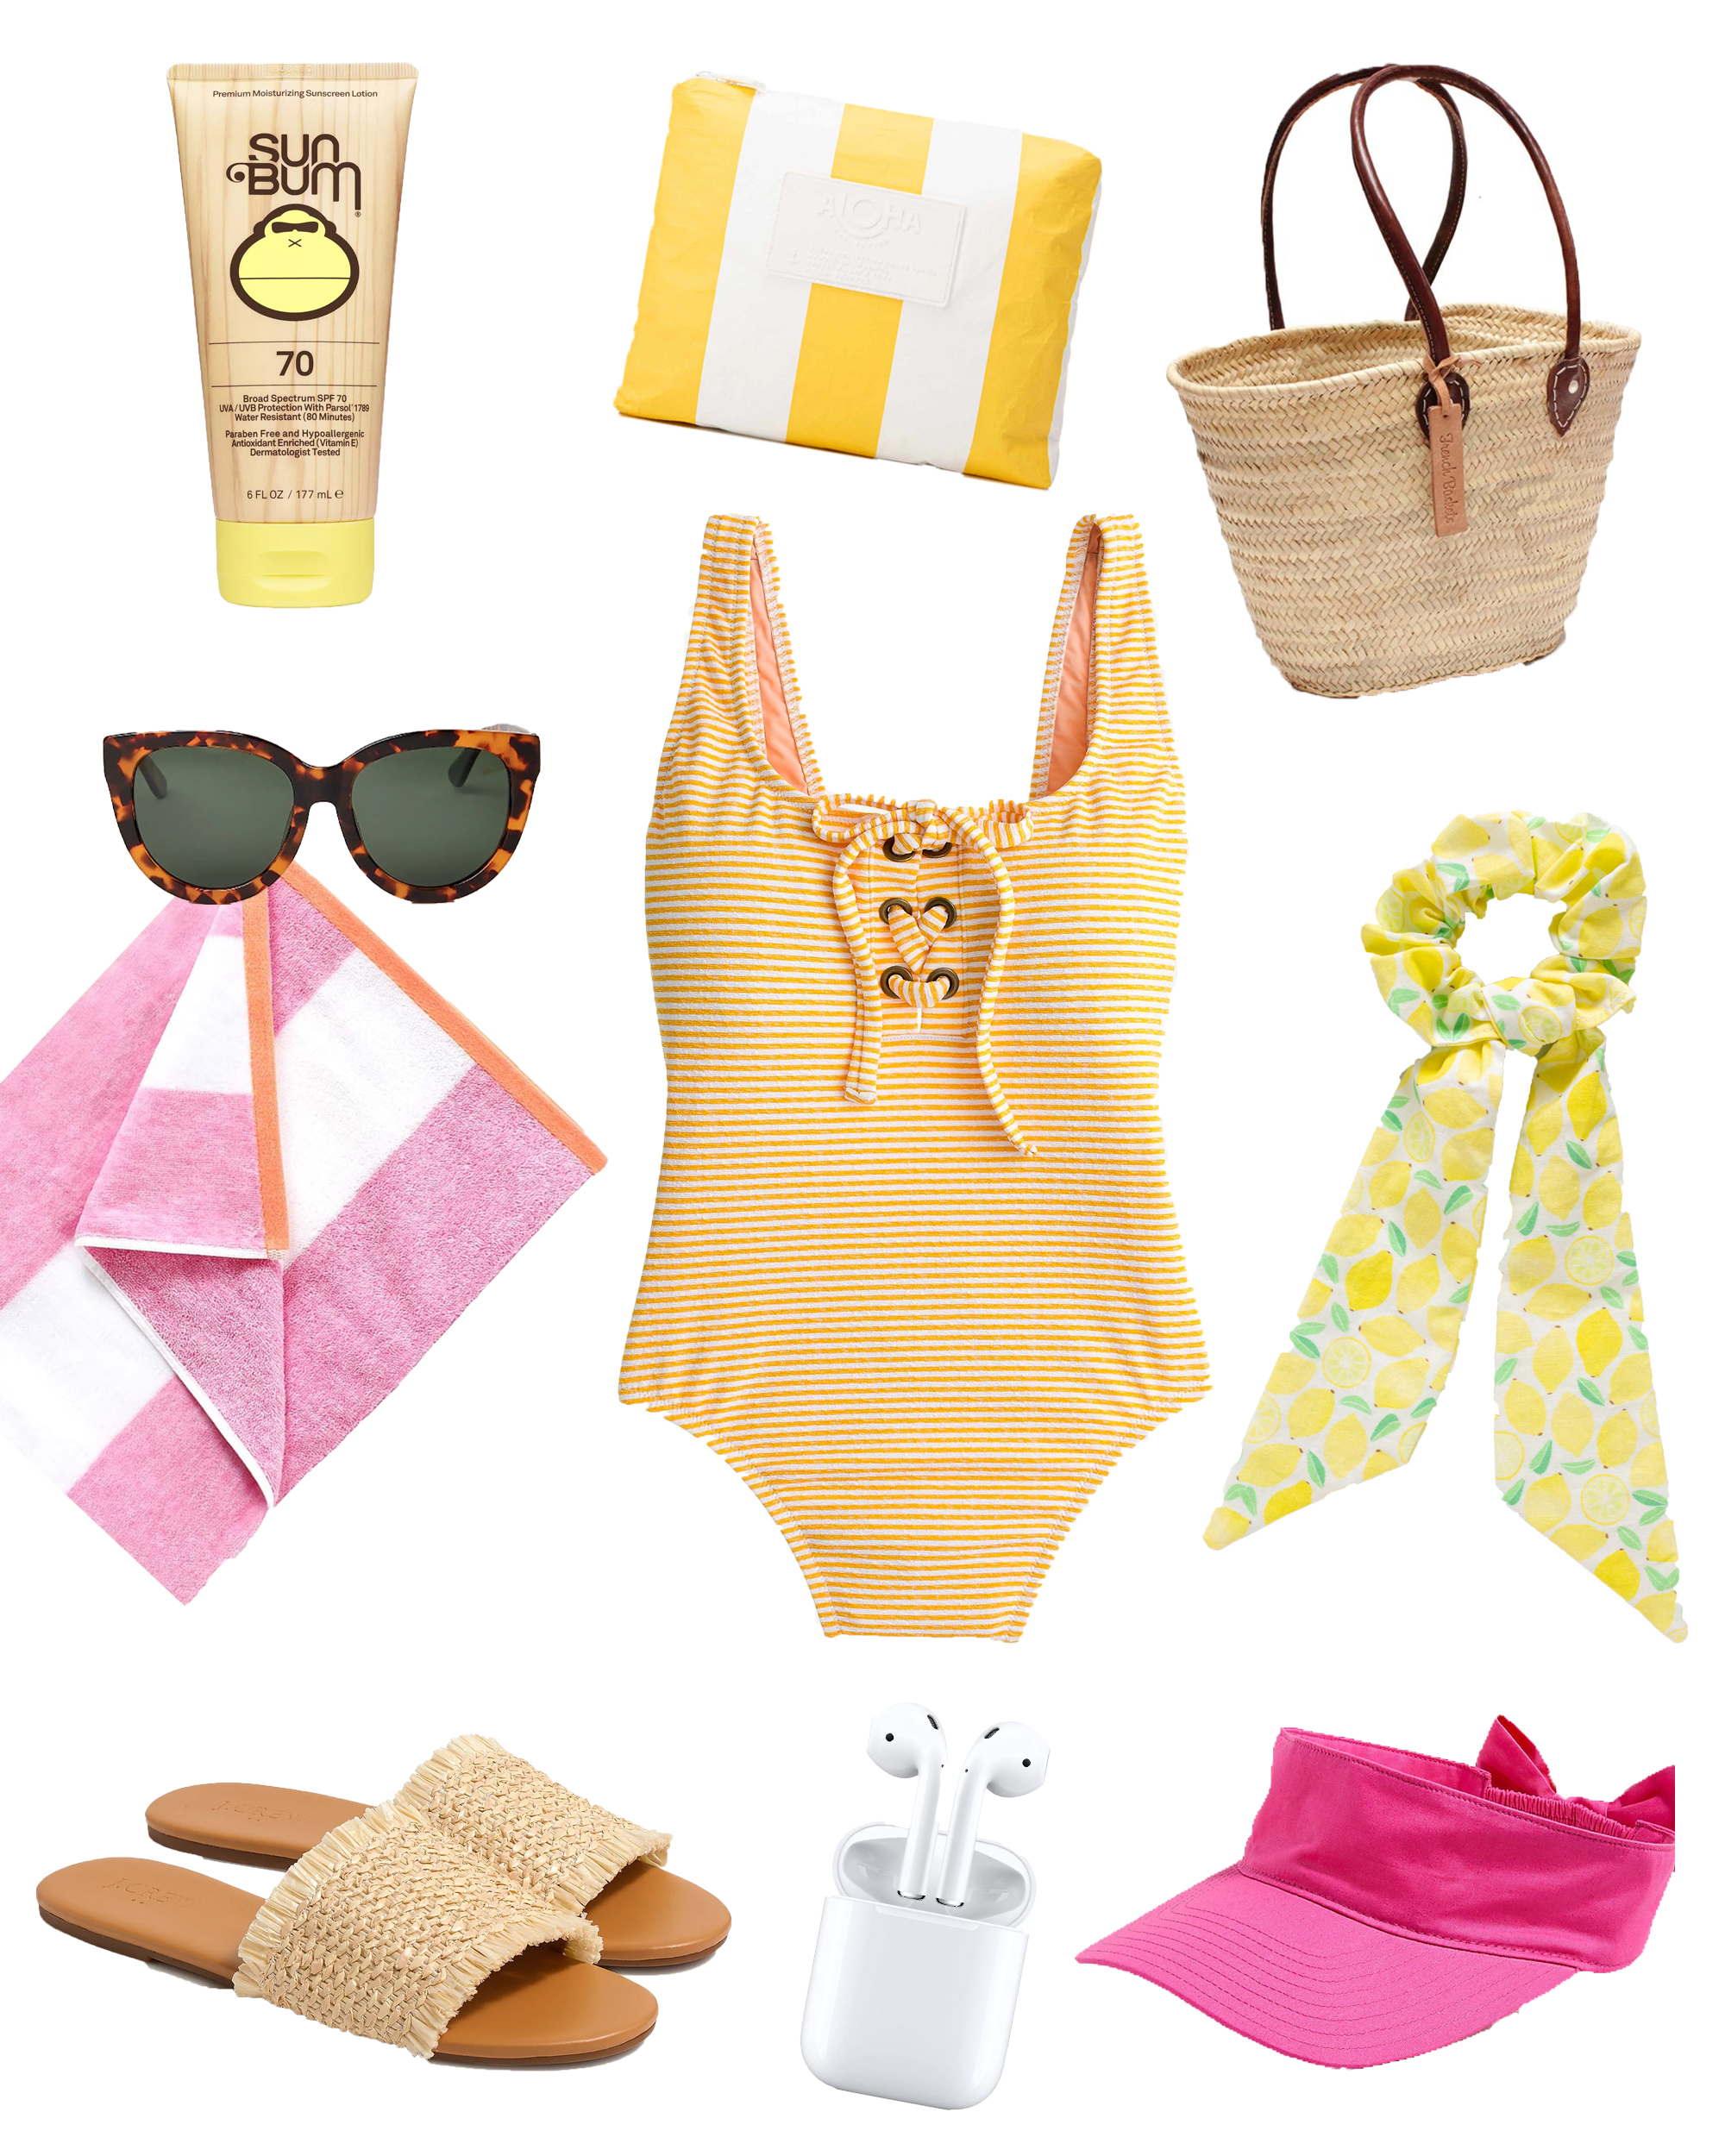 Beach Bag Packing List Essentials / Packing A Bag for the Beach / What to Pack In Your Beach Bag / - Sunshine Style - A Florida Based Fashion and Lifestyle Blog by Katie